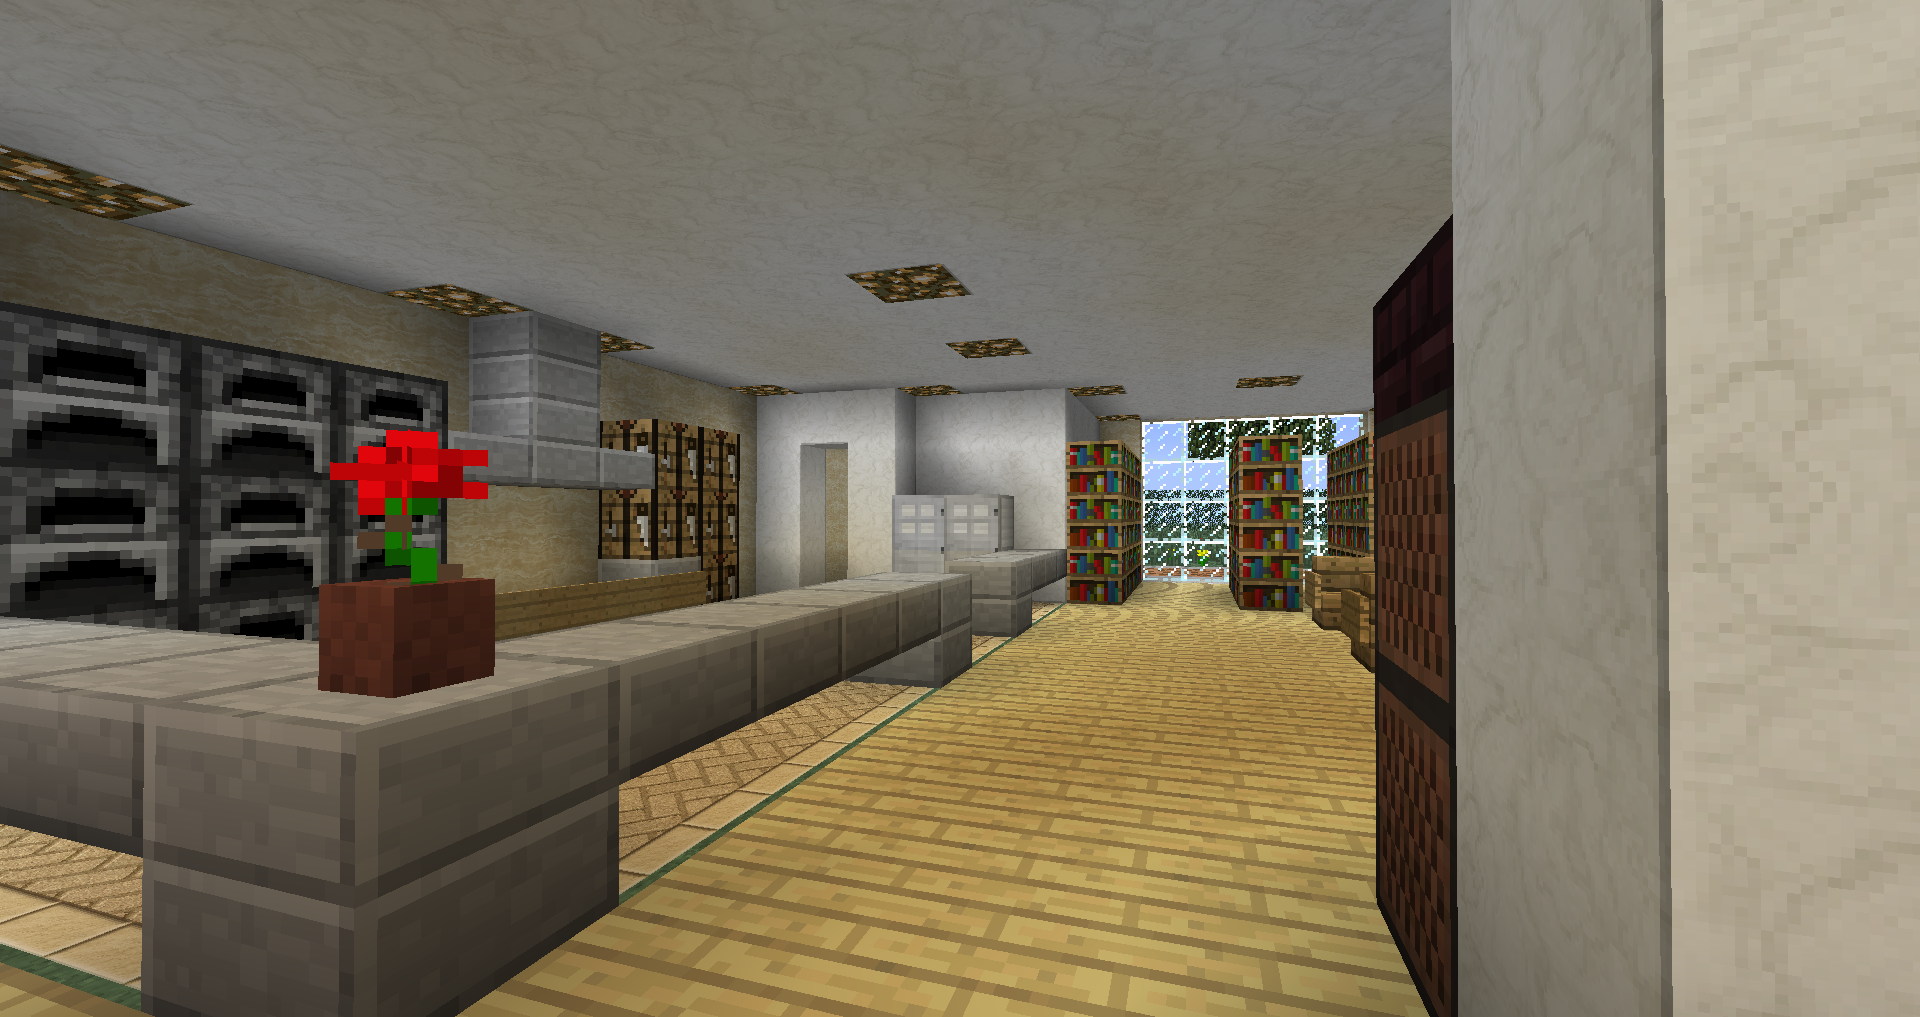 Villa minecraft ! sur le forum minecraft   24 02 2013 22:16:23 ...